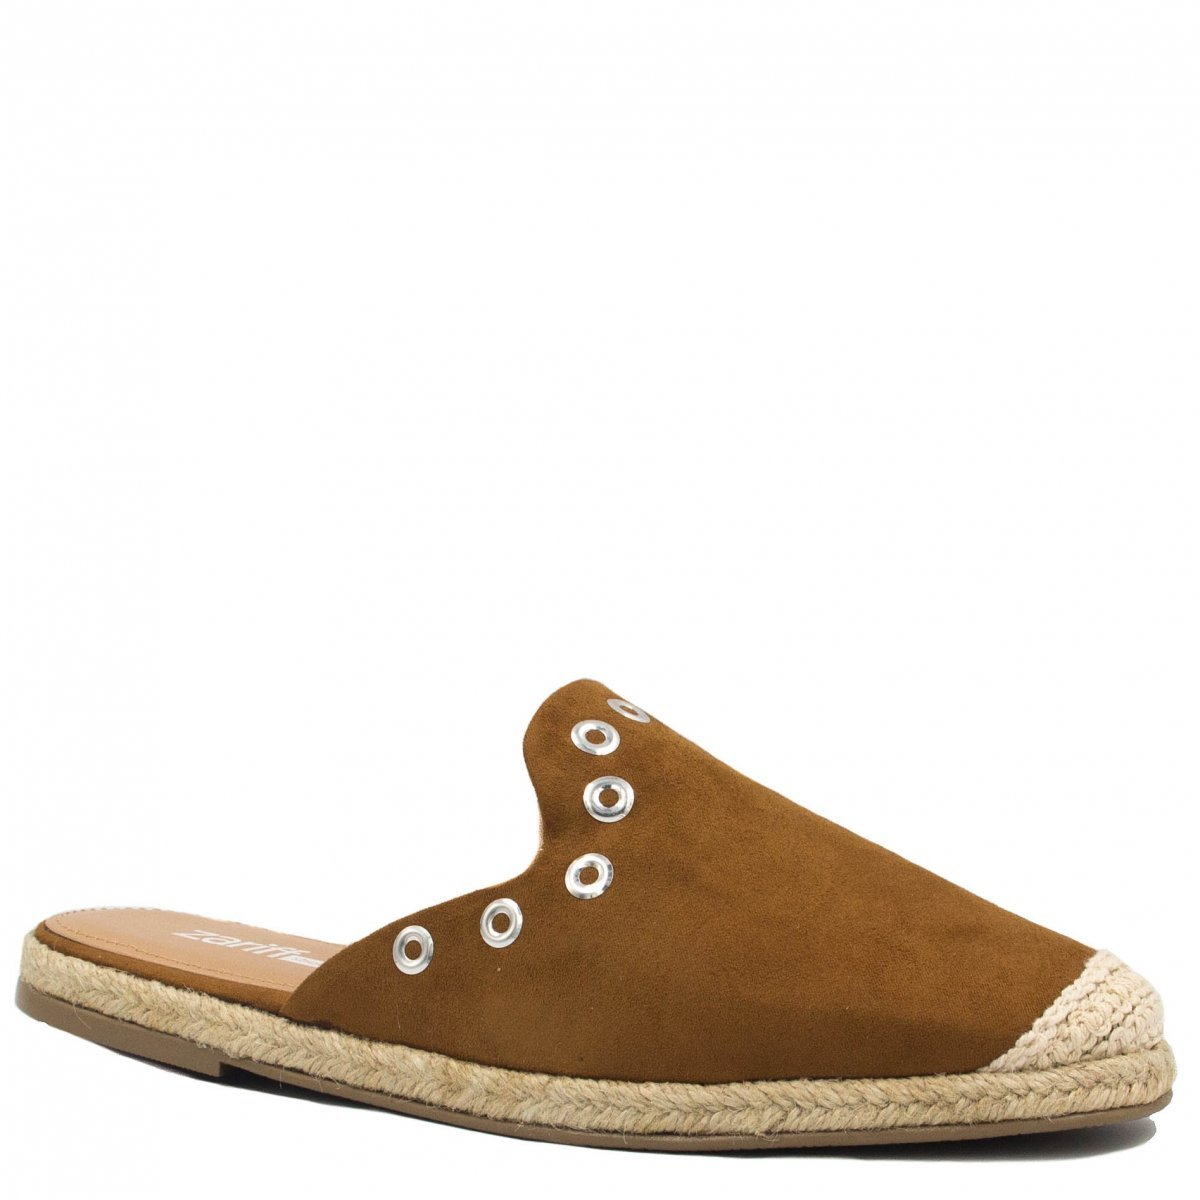 Mule Zariff Shoes Casual Corda Marrom